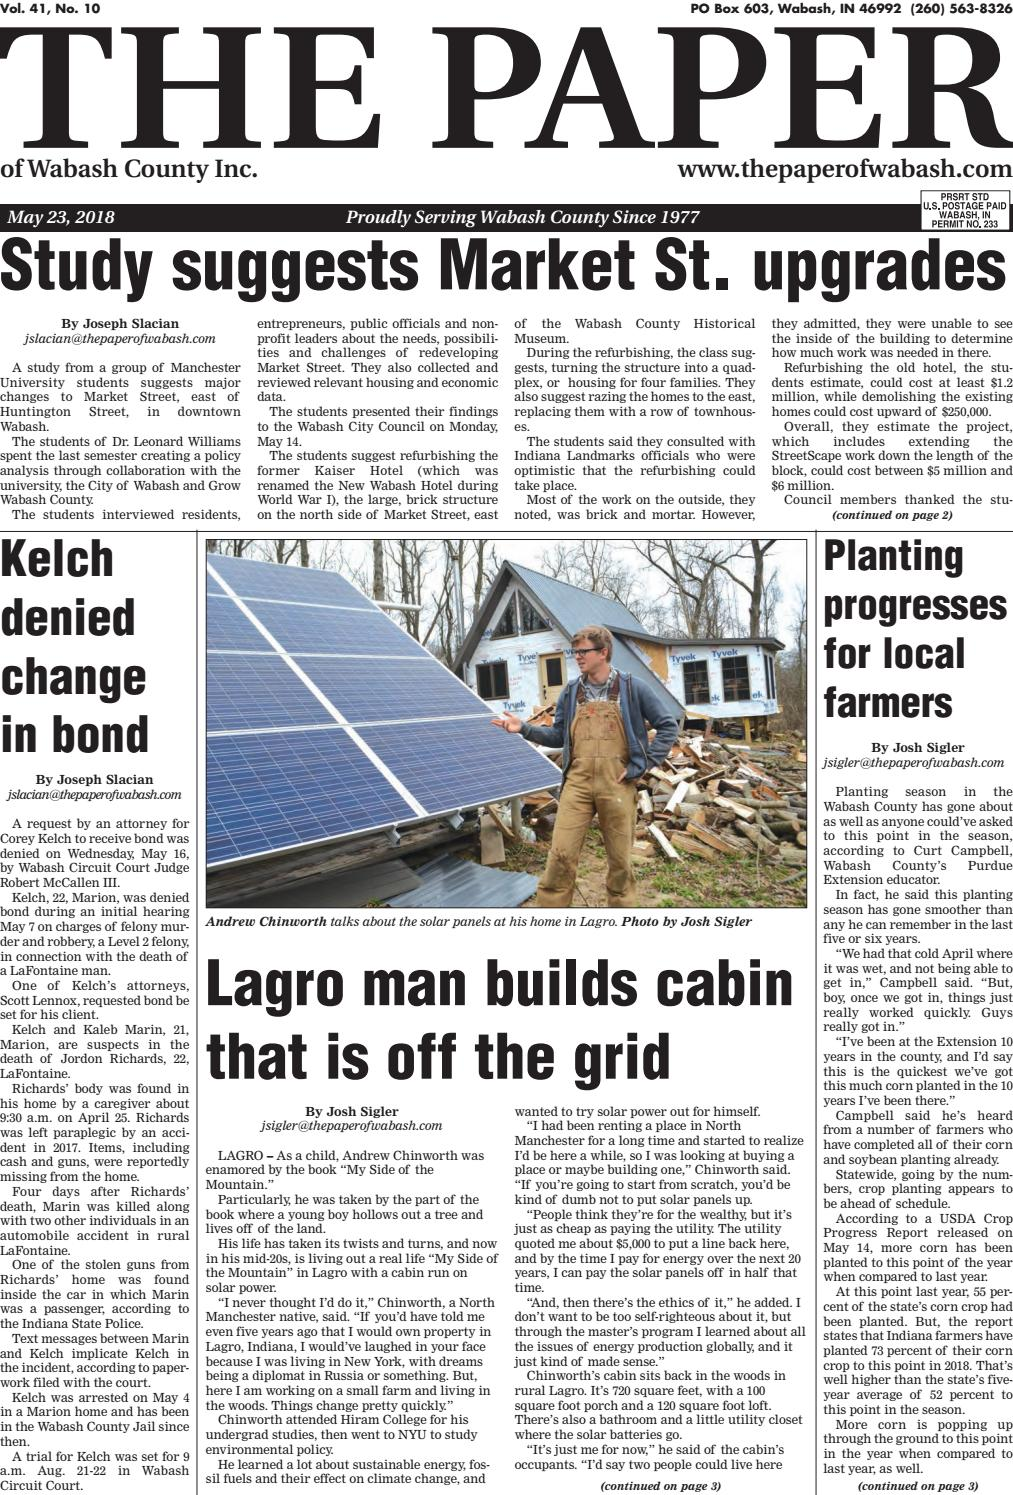 The Paper of Wabash County May 23 issue